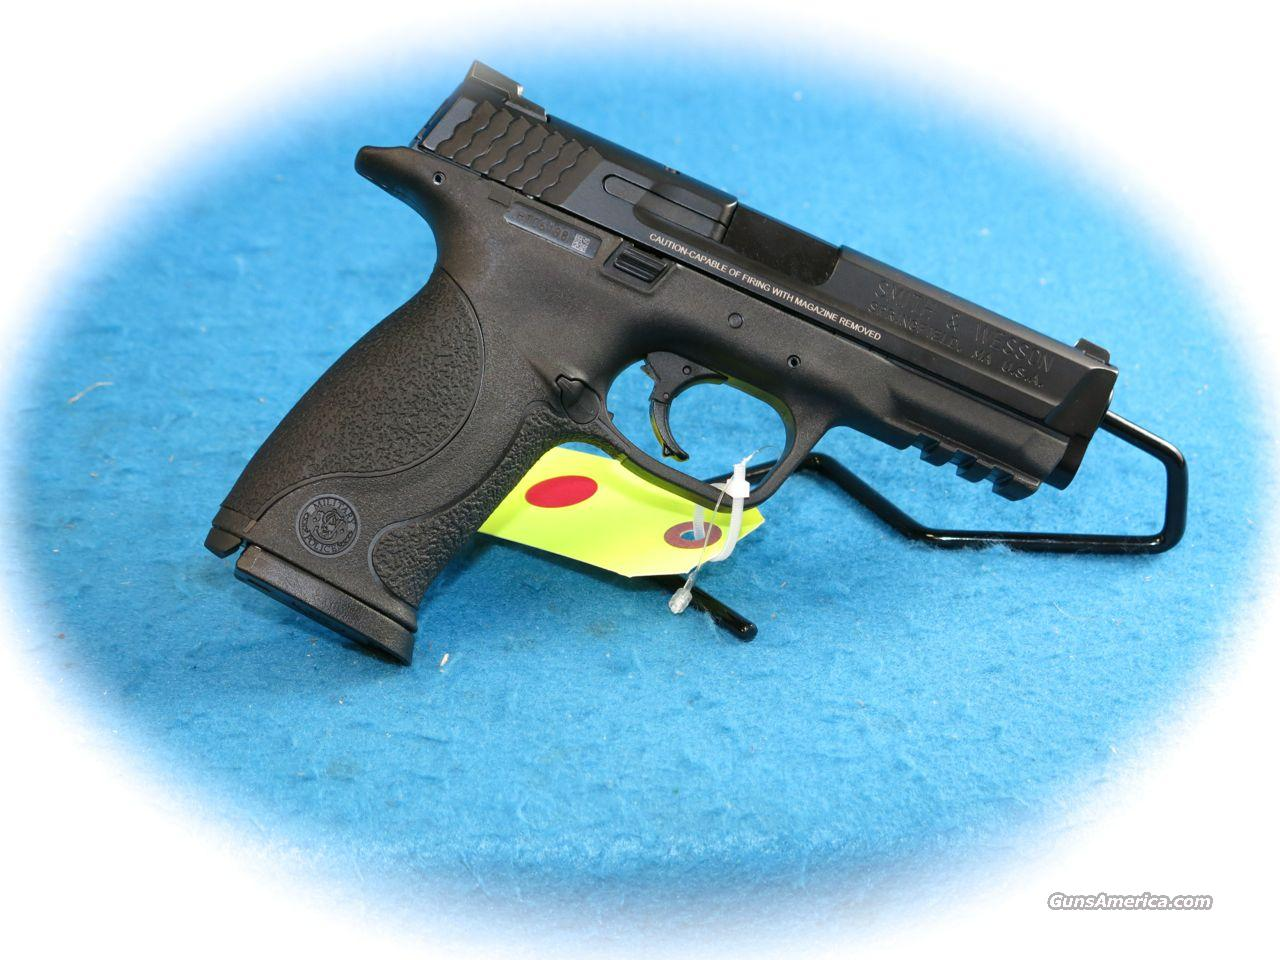 Smith & Wesson M&P40 Semi Auto .40 S&W Pistol No Thumb Safety **New**  Guns > Pistols > Smith & Wesson Pistols - Autos > Polymer Frame